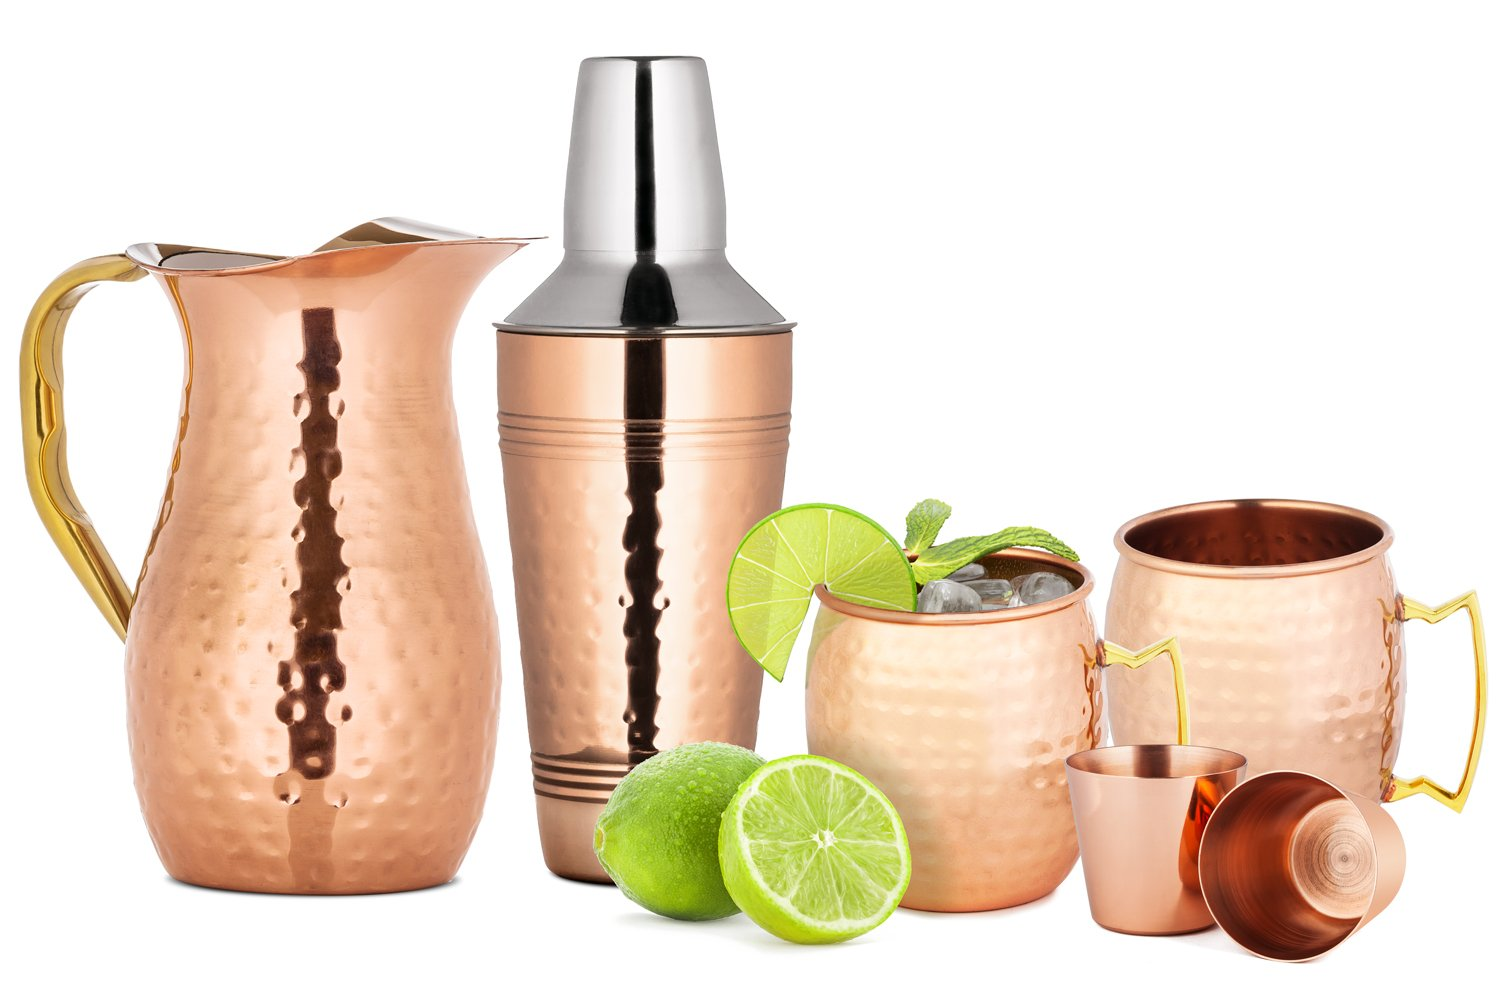 Chef's Star 6 Piece Copper Bar Tools Set - (2x) 18oz Moscow Mule Mugs - 2 Shot Glasses - 25.3 oz Shaker - 50.7 oz Pitcher Chef's Star SYNCHKG121665